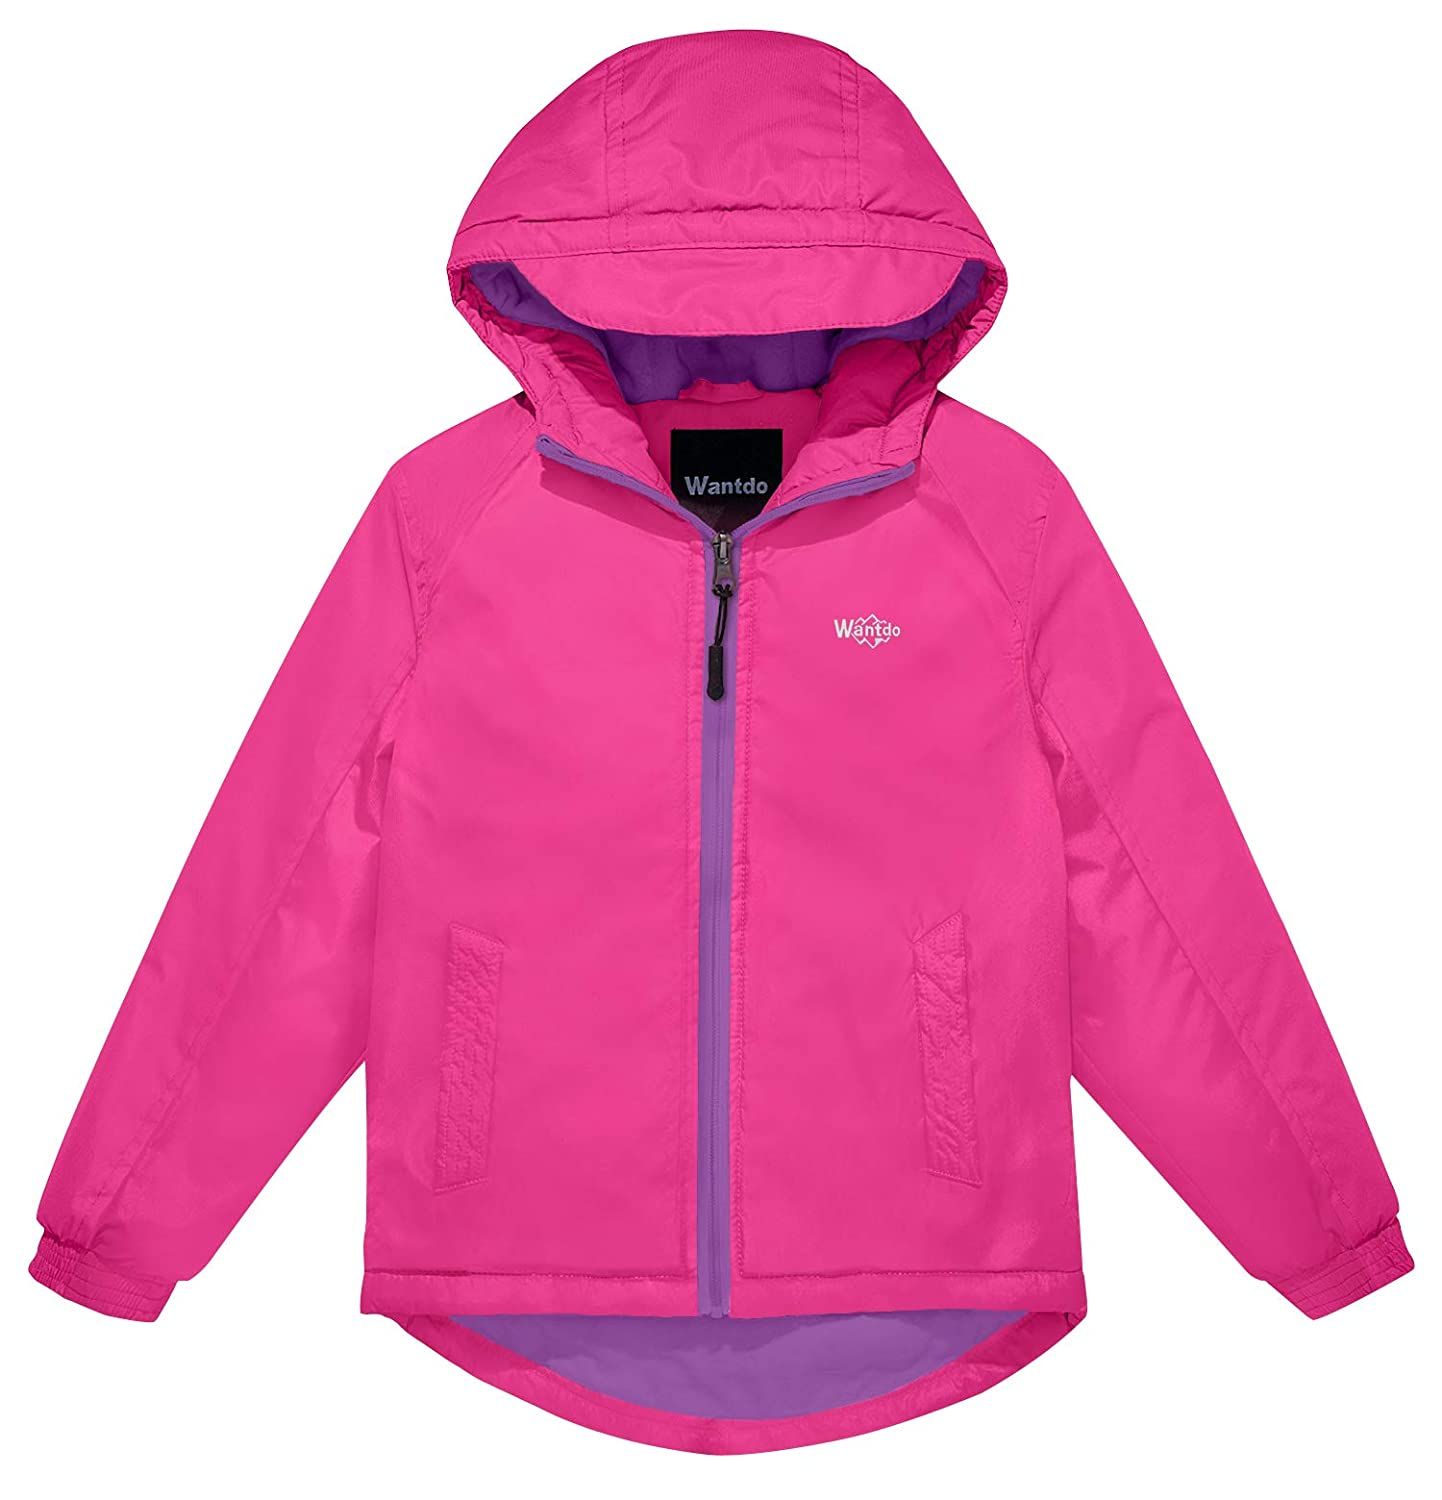 Wantdo Girl's Hooded Spring Jacket Windproof Fleece Ski Jacket